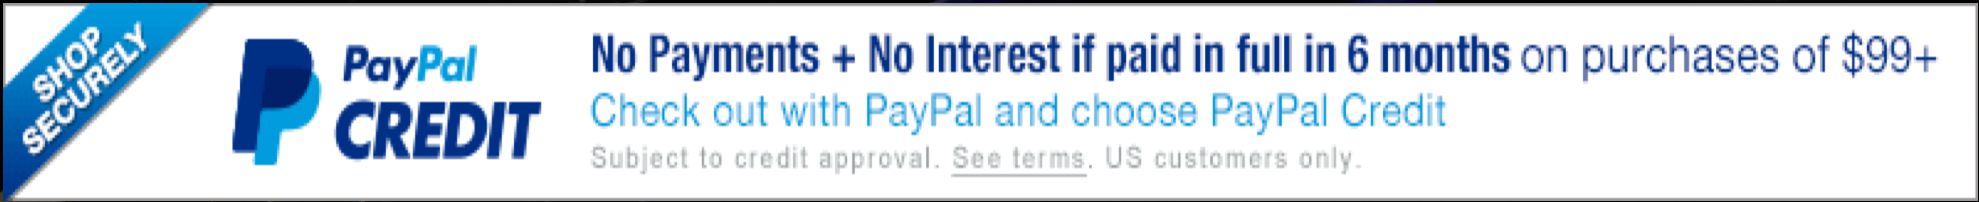 PayPal Credit 6 Months Interest Free